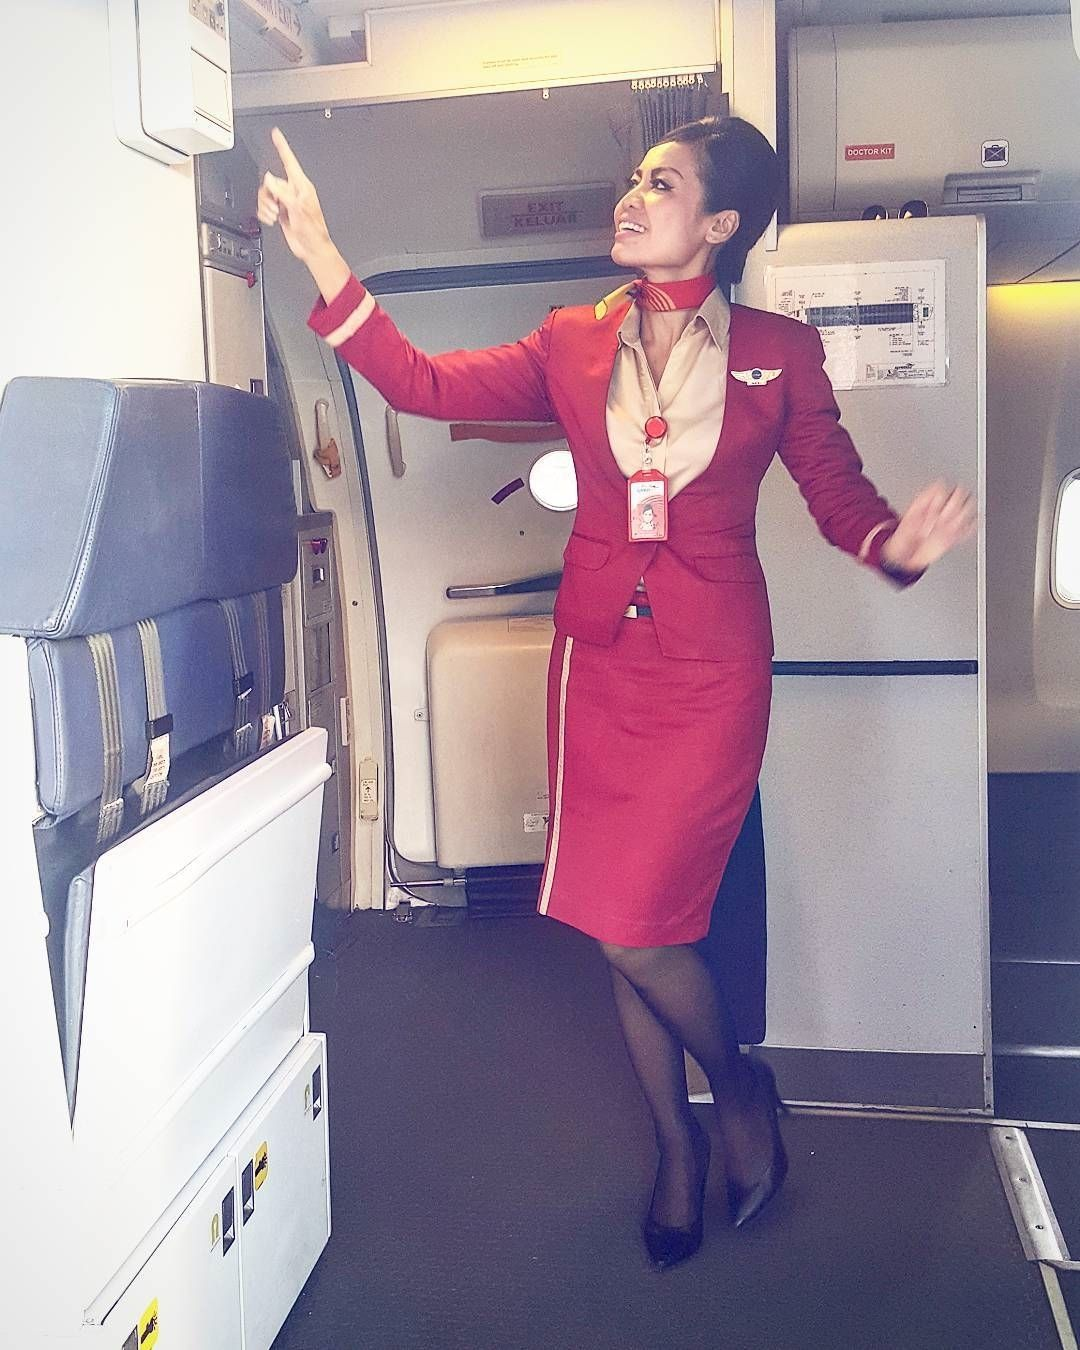 From @henie_picart http://bit.ly/2rKIPrz She's hurt mentally & emotionally but everyday she walks with a smile cause thats just who she is the girl who never stopped smilling  #bepositive #bethankful #behappy #smile #crewlife #crewiser #flightattendant #instacrew #cabincrew #instacrew #cabinlife #cabincrew #crewiser #pilot #stewardess #aircrew #flying #airhostess #travel #avgeek #fly #cabincrewlifestyle #airlines #steward #airline #airlinescrew #crewlifestyle #flightattendants #plane…